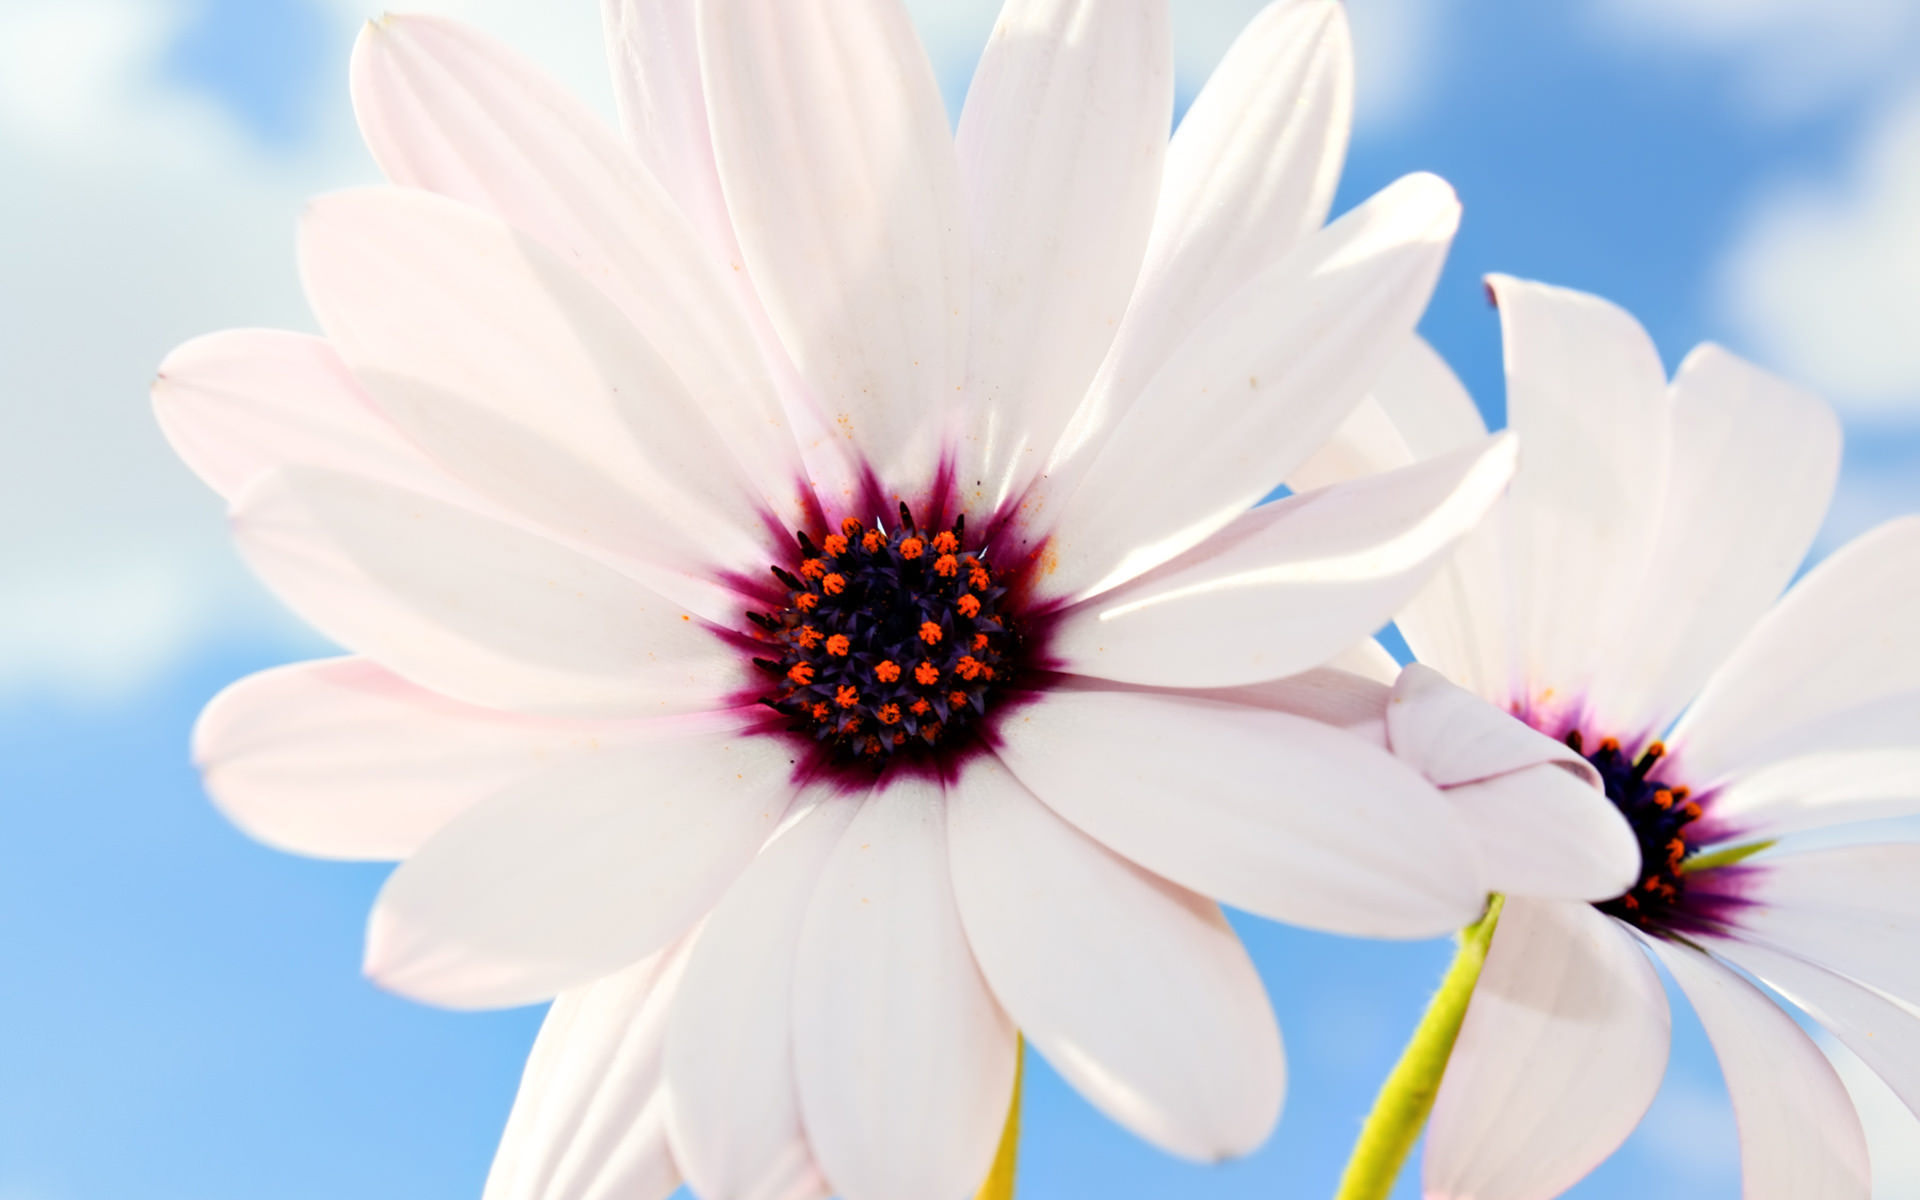 Light Pinked Daisy Flower Best Wallpaper